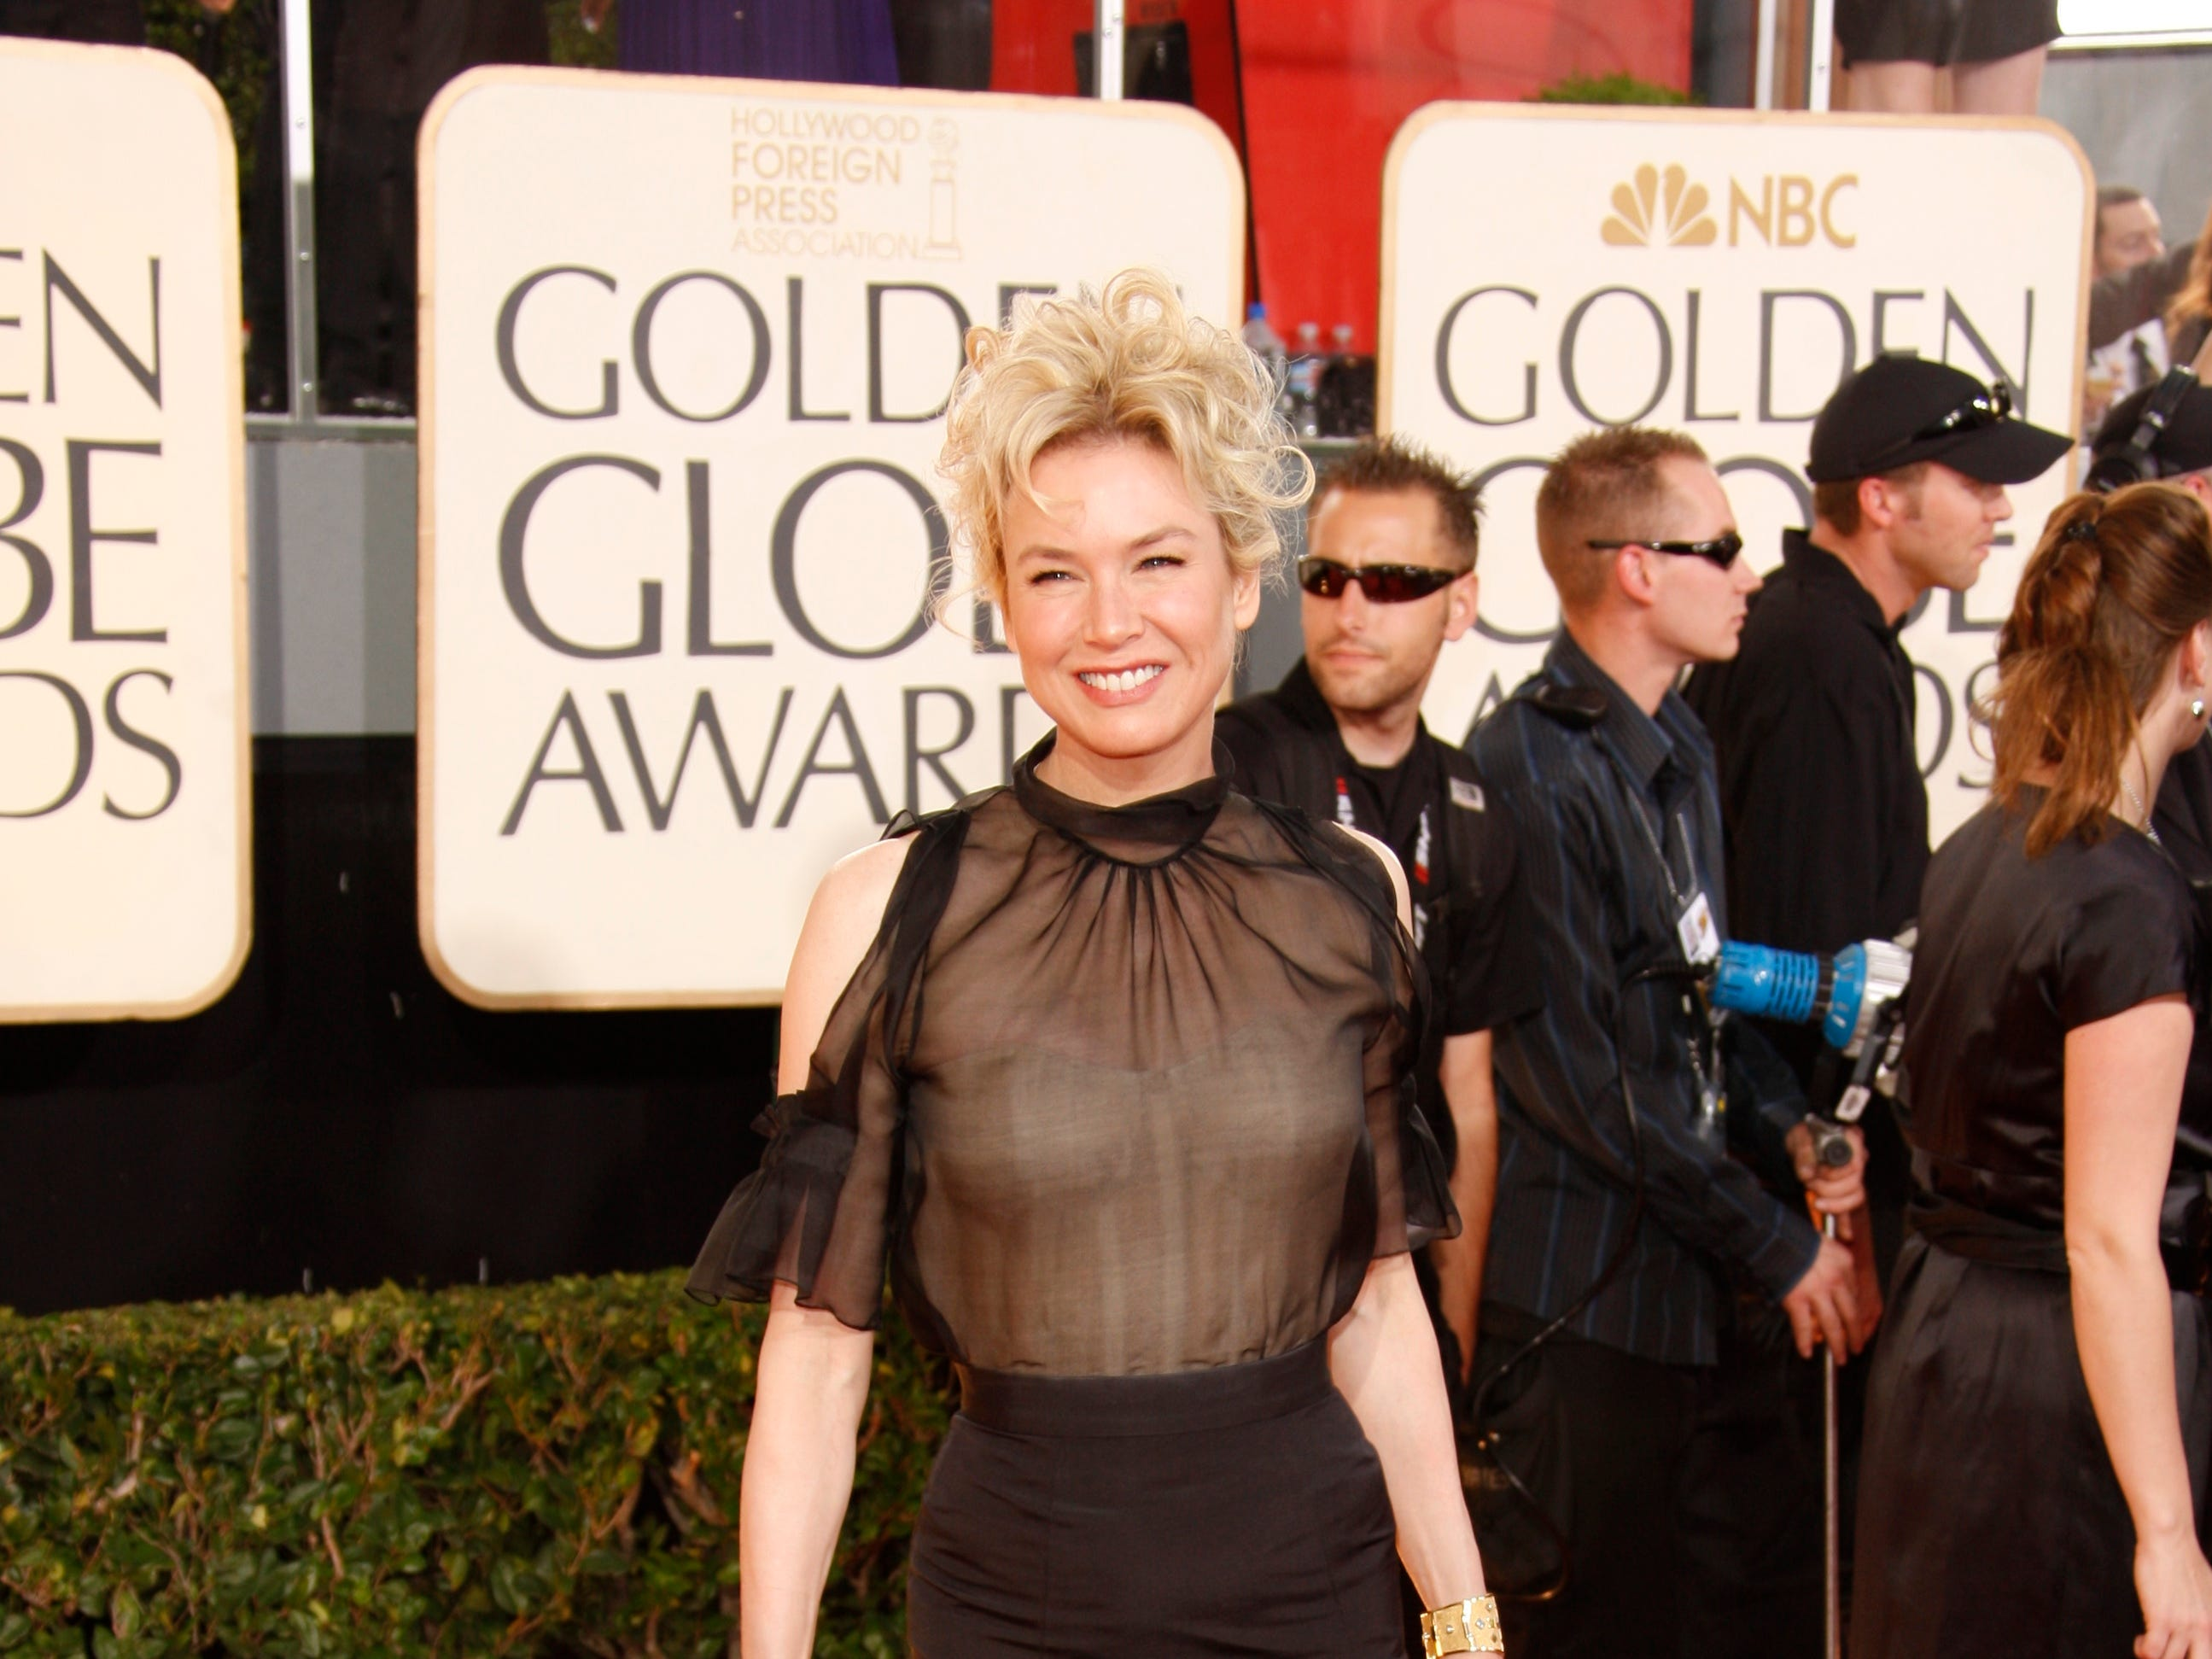 1/11/09 5:52:24 PM -- Beverly Hills, CA, U.S.A  Rene Zellweger--arrives at the 66th annual Golden Globe Awards at the Beverly Hilton Hotel in Beverly Hills, CA   Photo by Dan MacMedan, USA TODAY contract photographer   ORG XMIT: DM 35663 d golden globe a 1/10/2009  (Via MerlinFTP Drop)